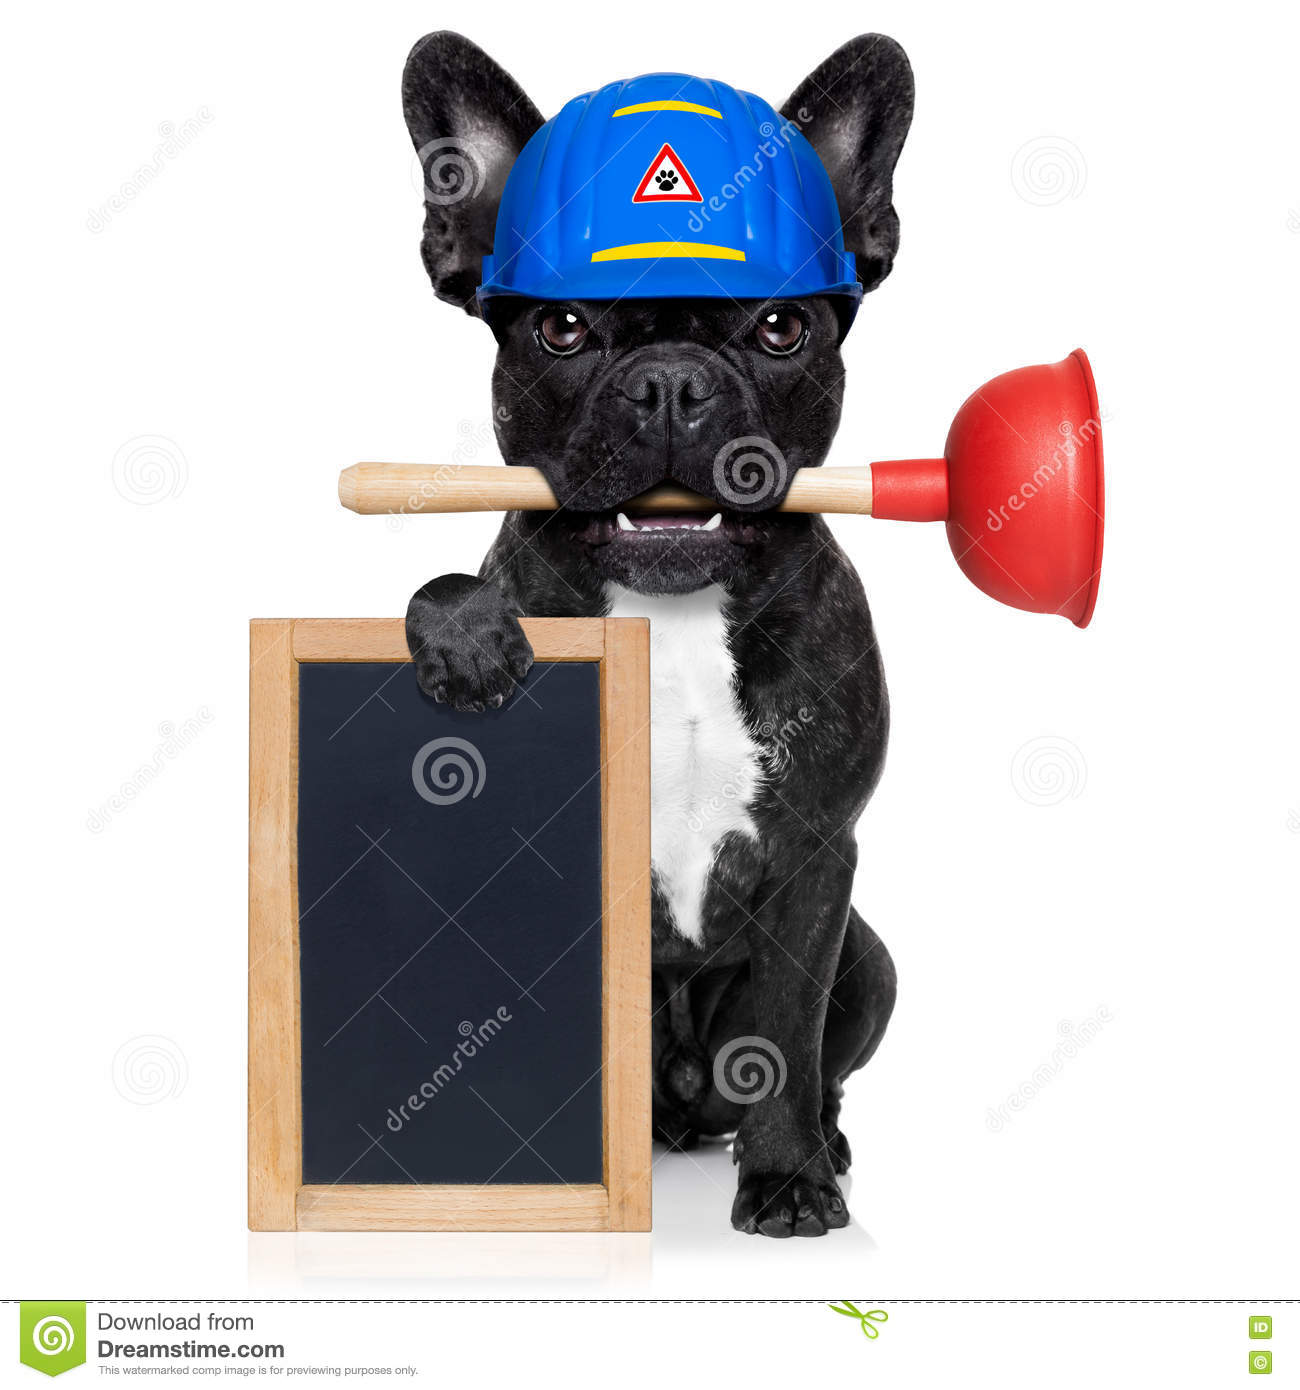 plumber-dog-plunger-handyman-french-bulldog-worker-helmet-mouth-ready-to-repair-fix-everything-home-white-76350086.jpg